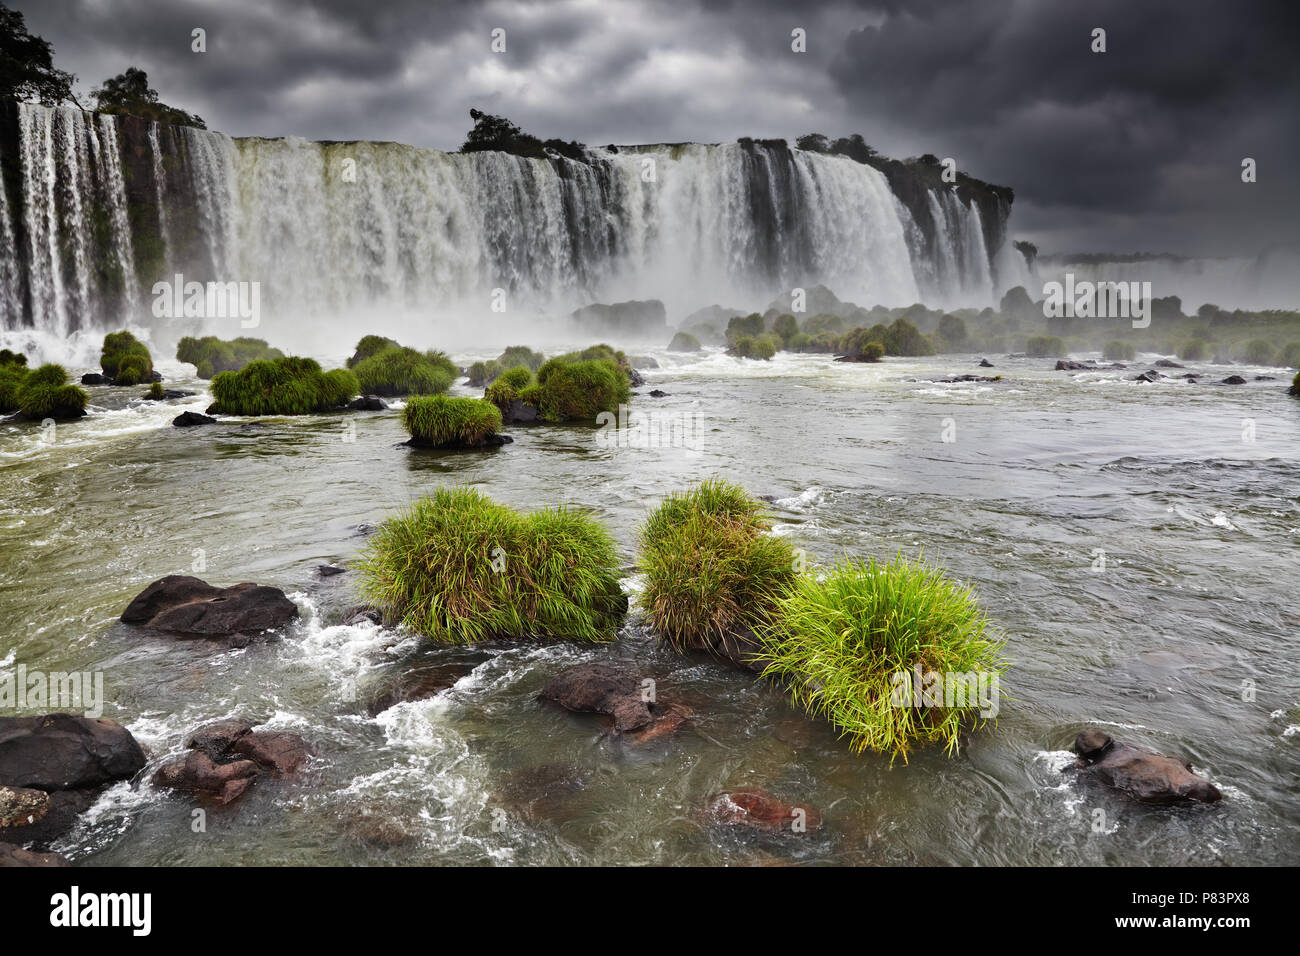 Iguassu Falls, the largest series of waterfalls of the world, located at the Brazilian and Argentinian border, View from Brazilian side Stock Photo